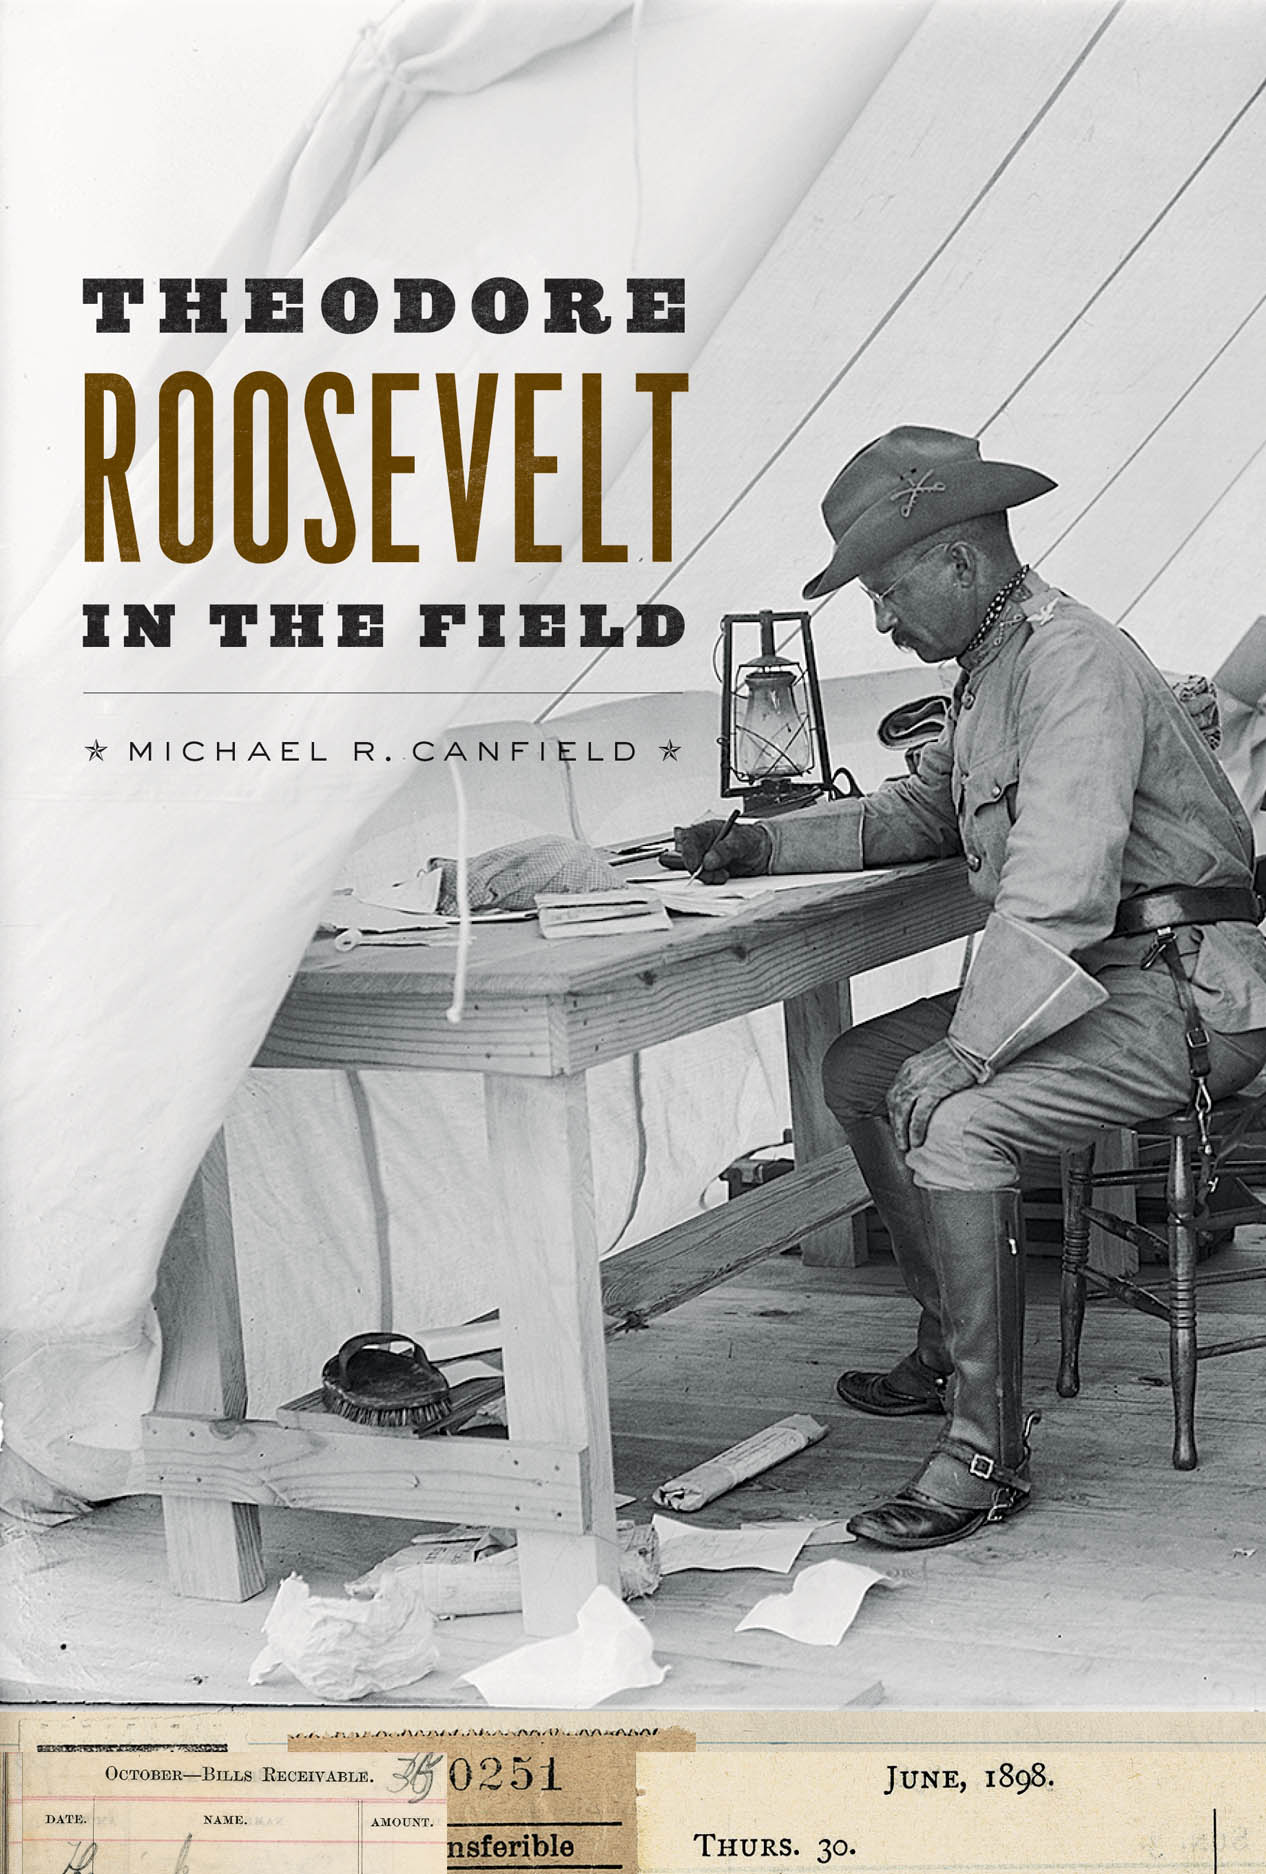 Theodore Roosevelt in the Field